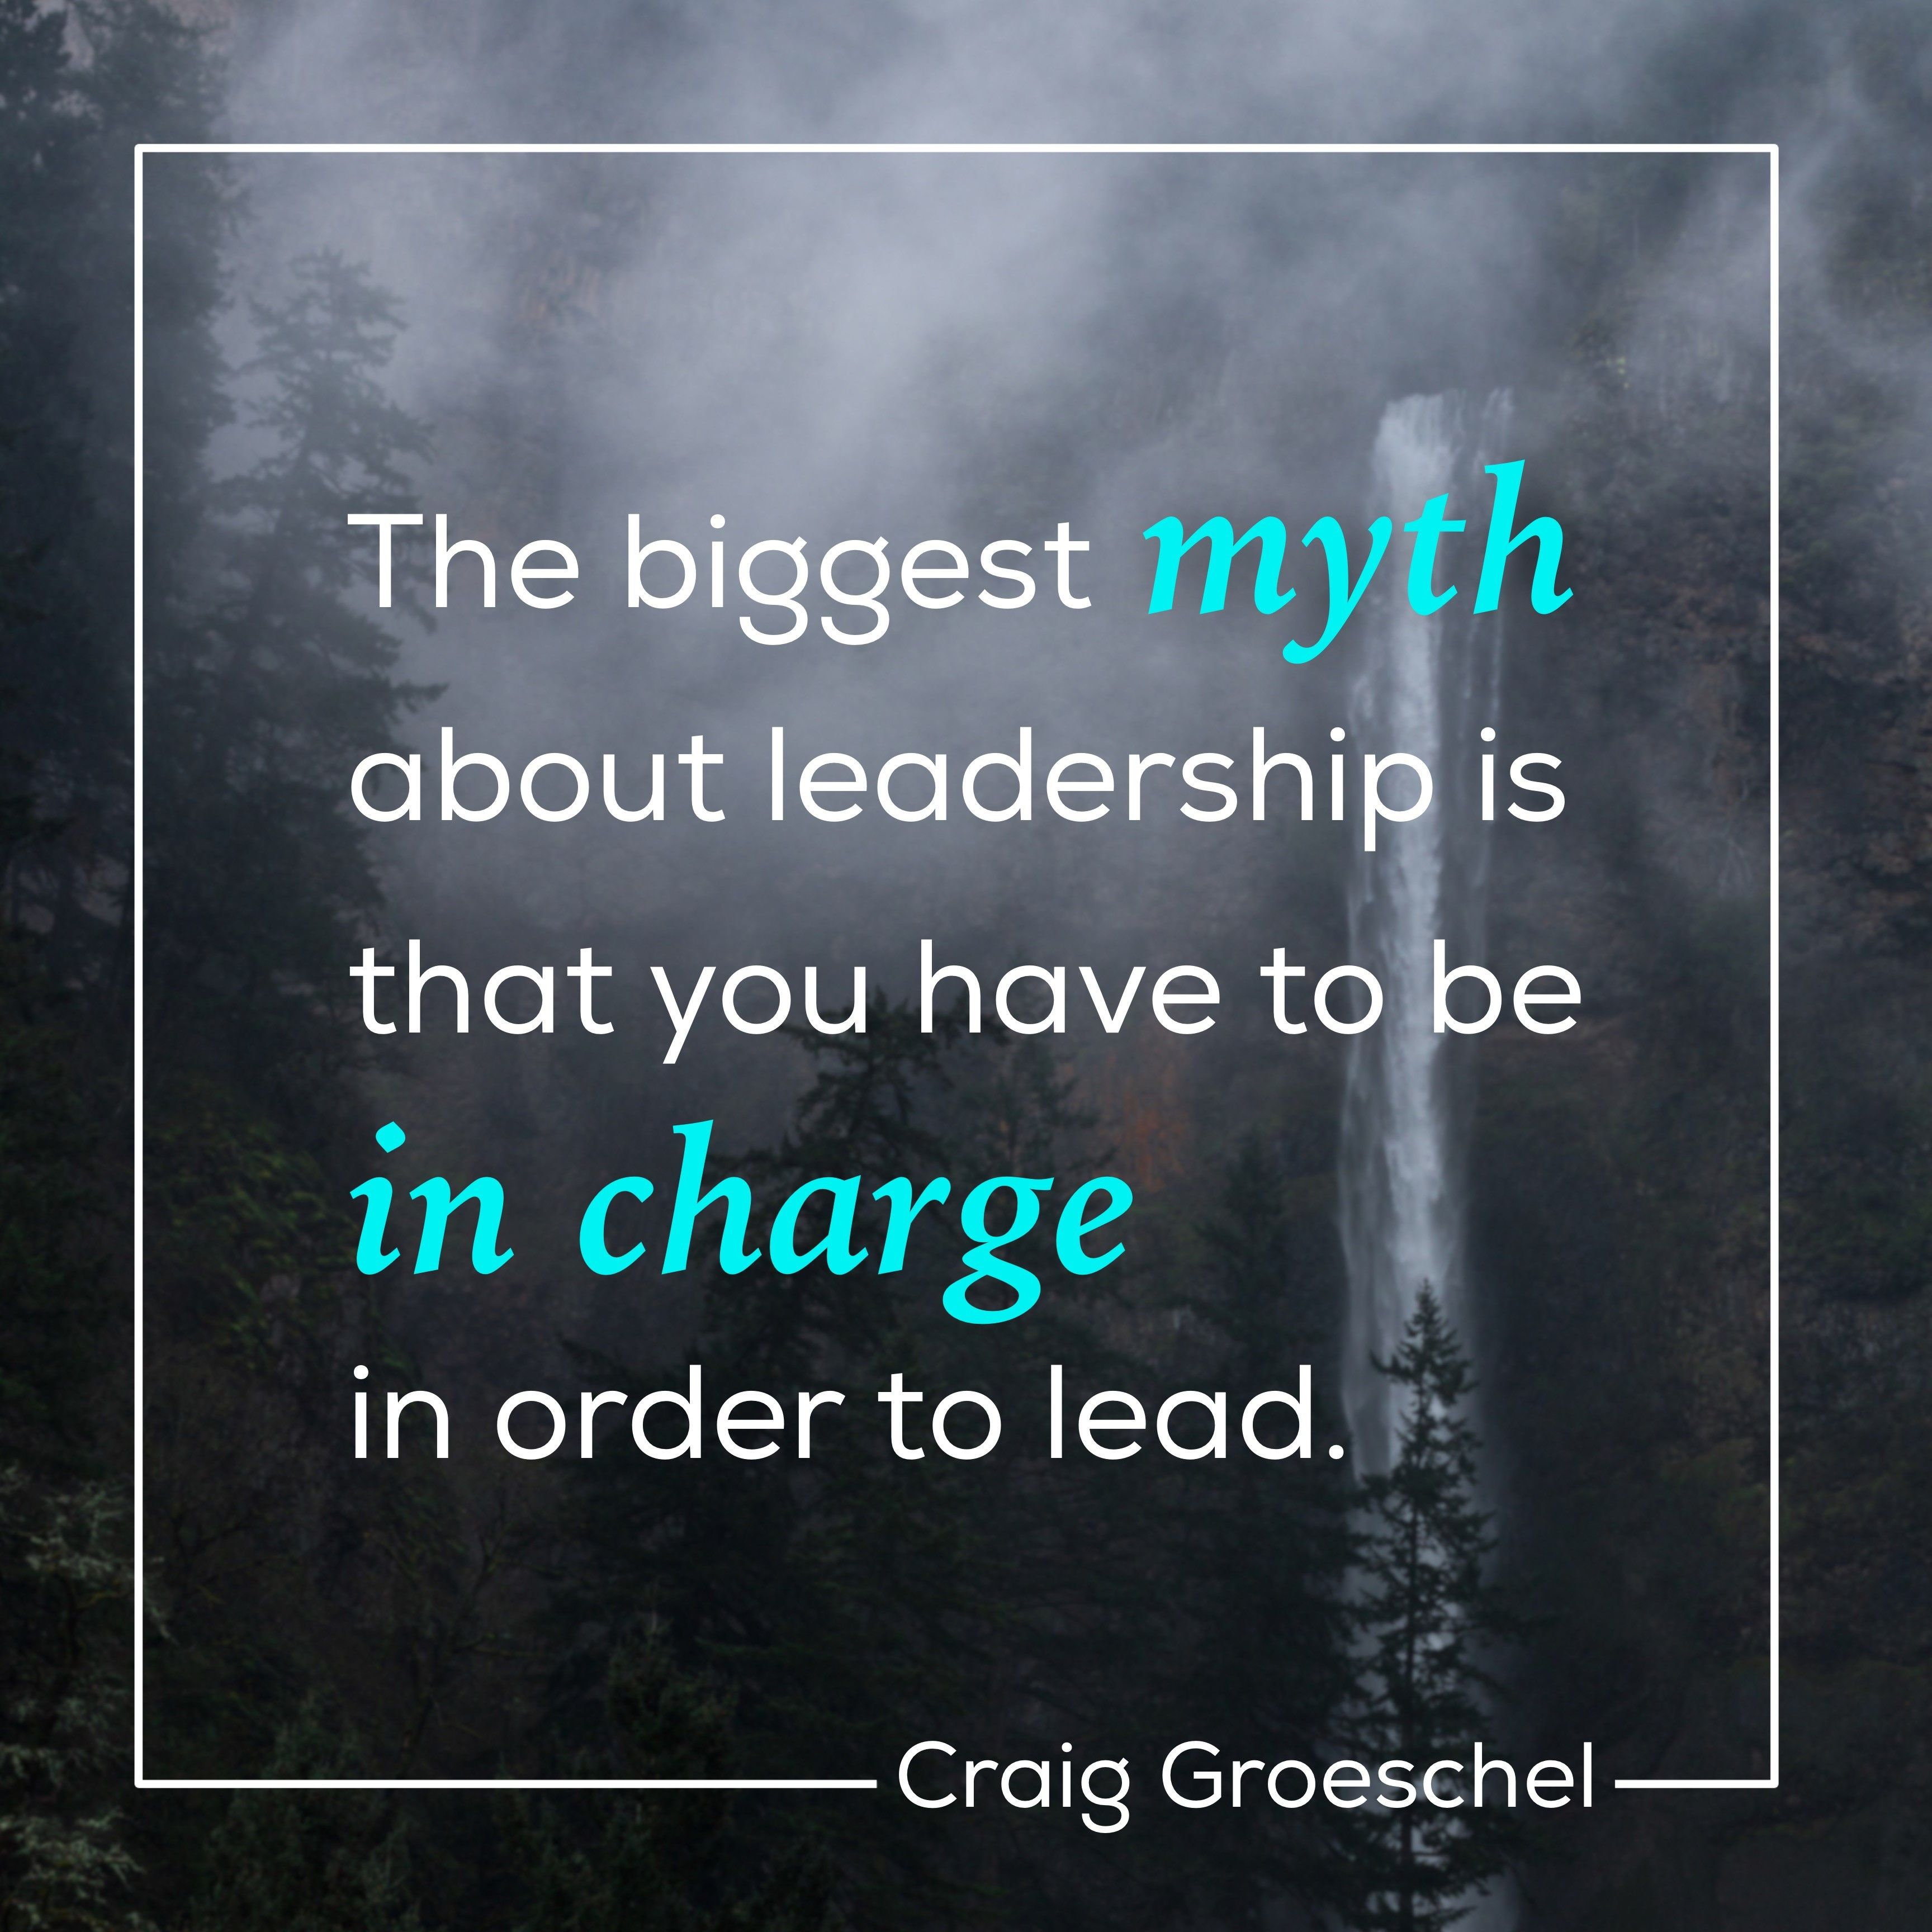 Servant Leadership Quotes The Biggest Myth About Leadership Is That You Have To Be In Charge